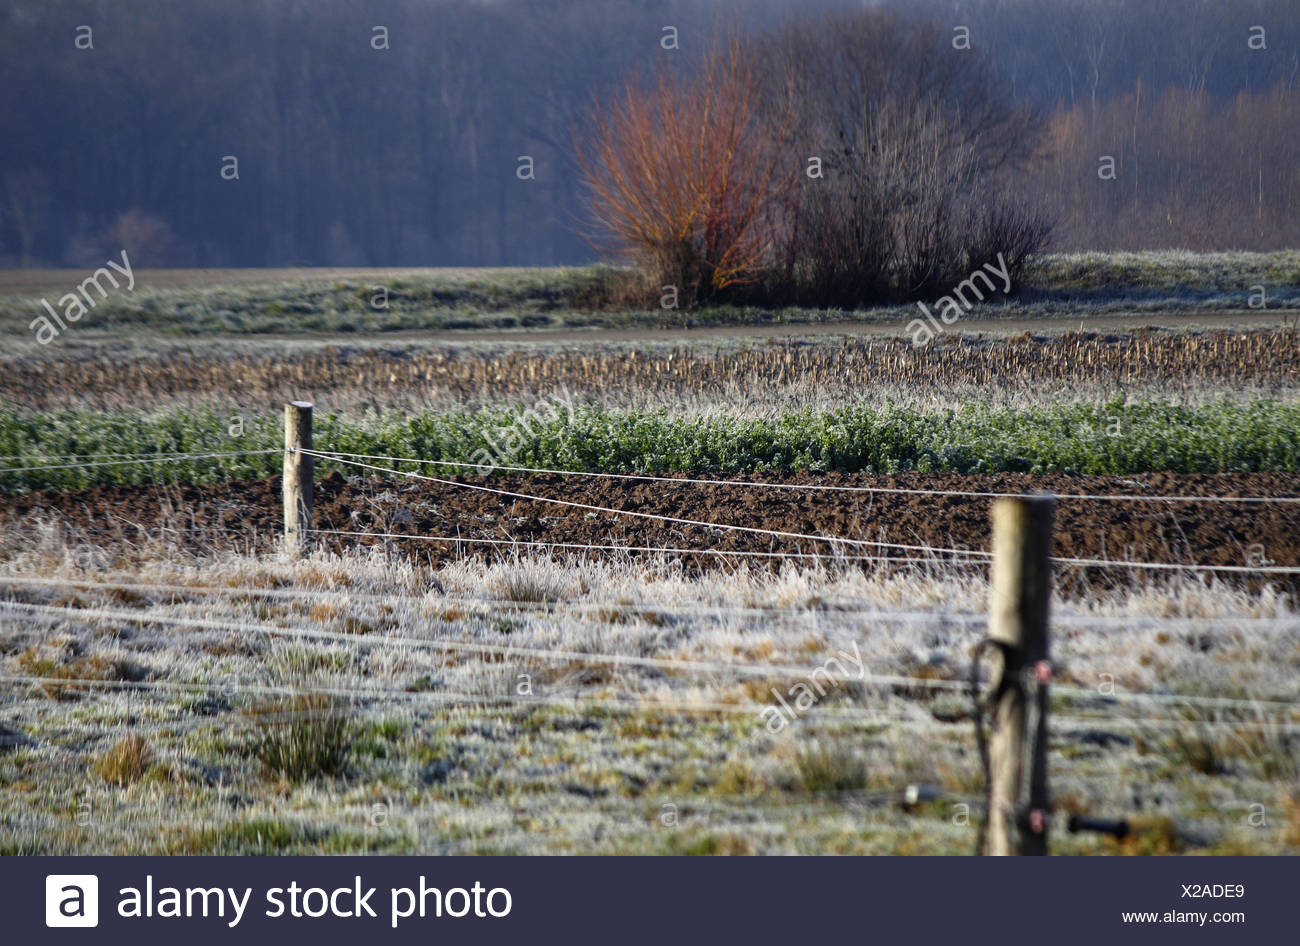 fields with fence and willow tree in hoarfrost, Germany, Baden-Wuerttemberg - Stock Image